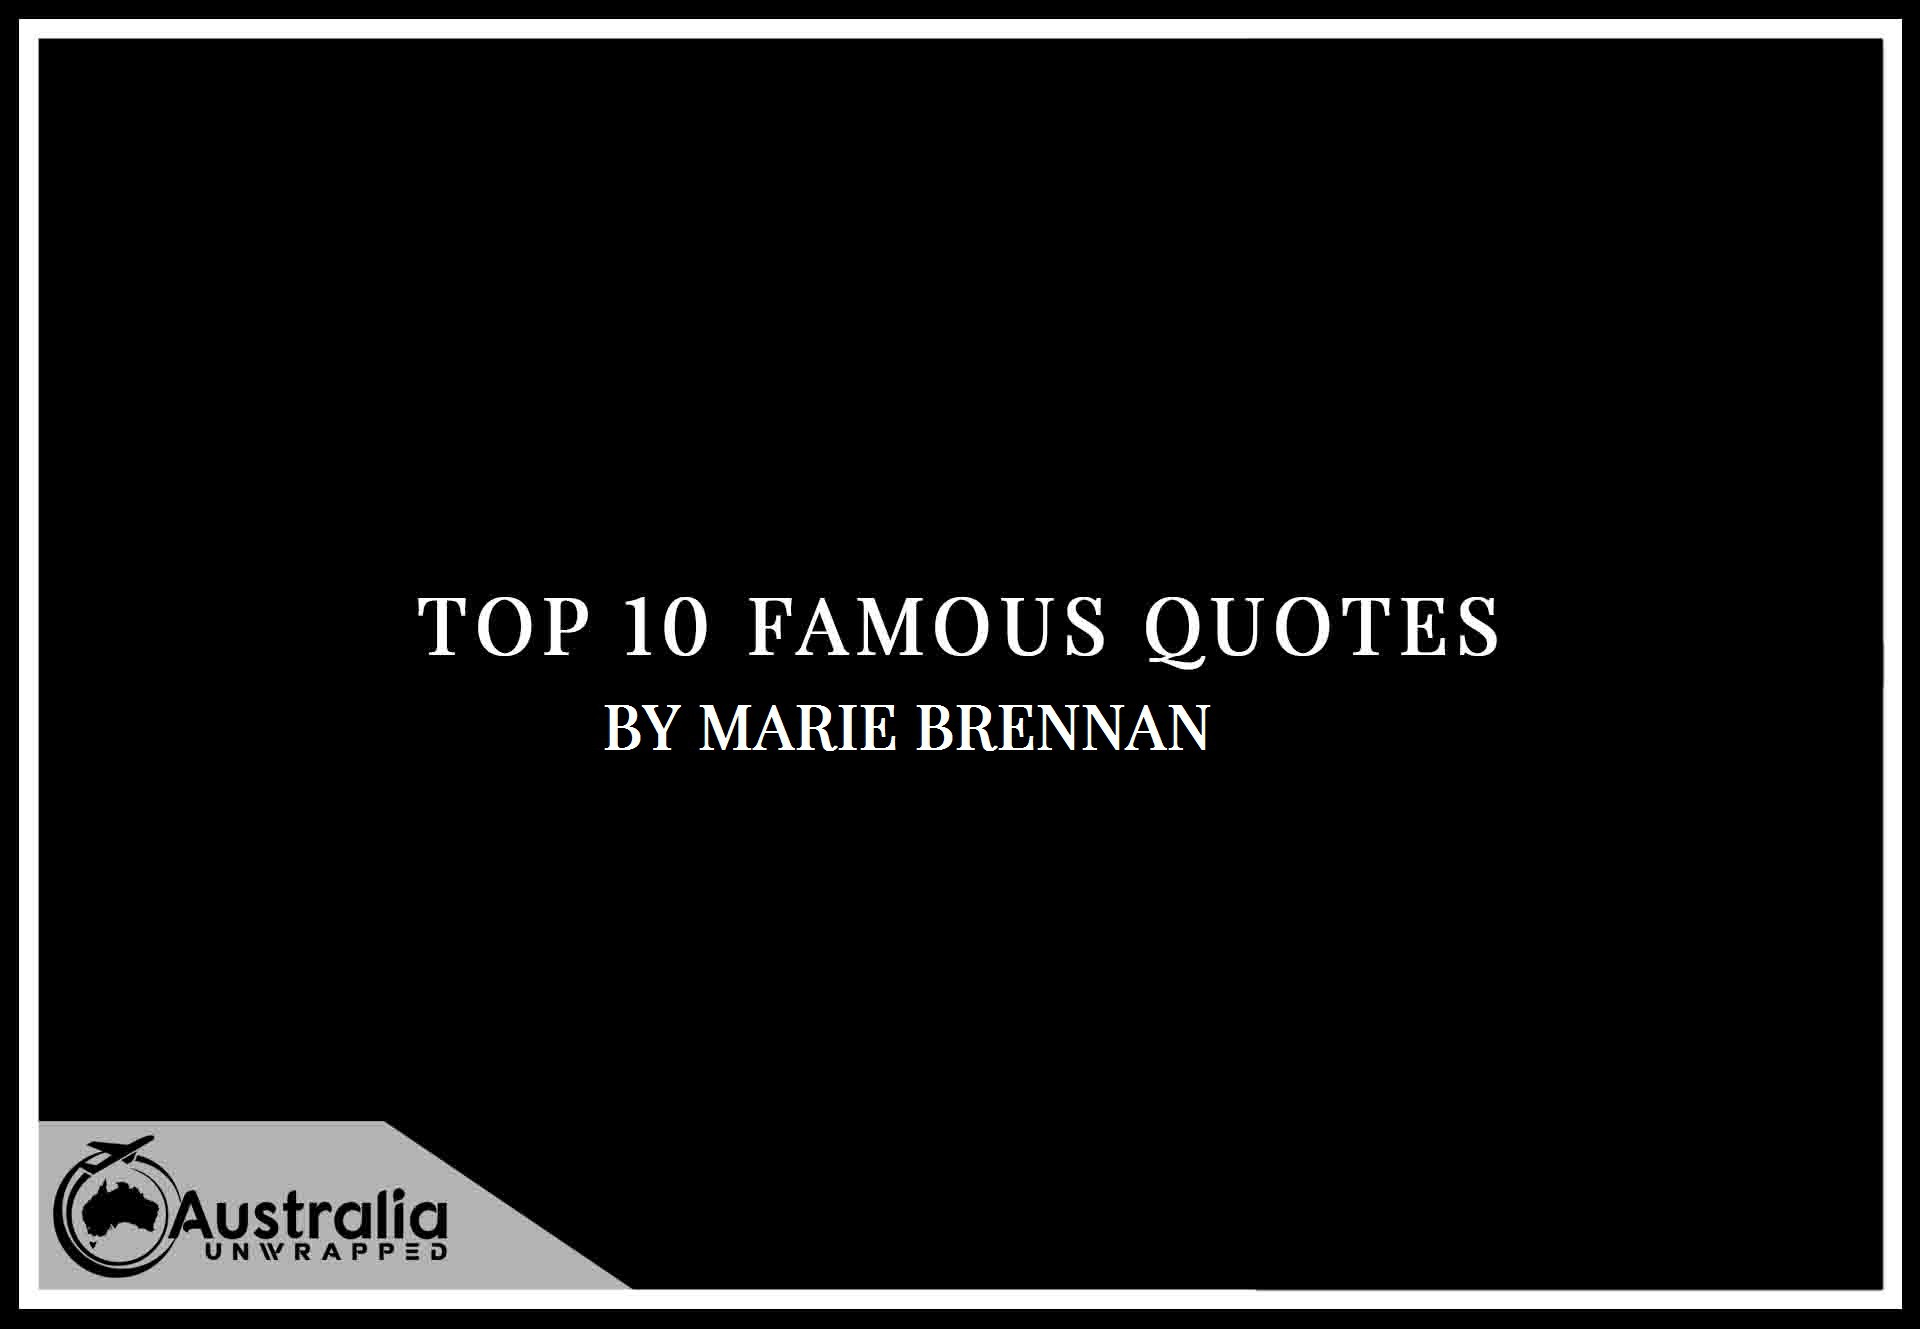 Marie Brennan's Top 10 Popular and Famous Quotes